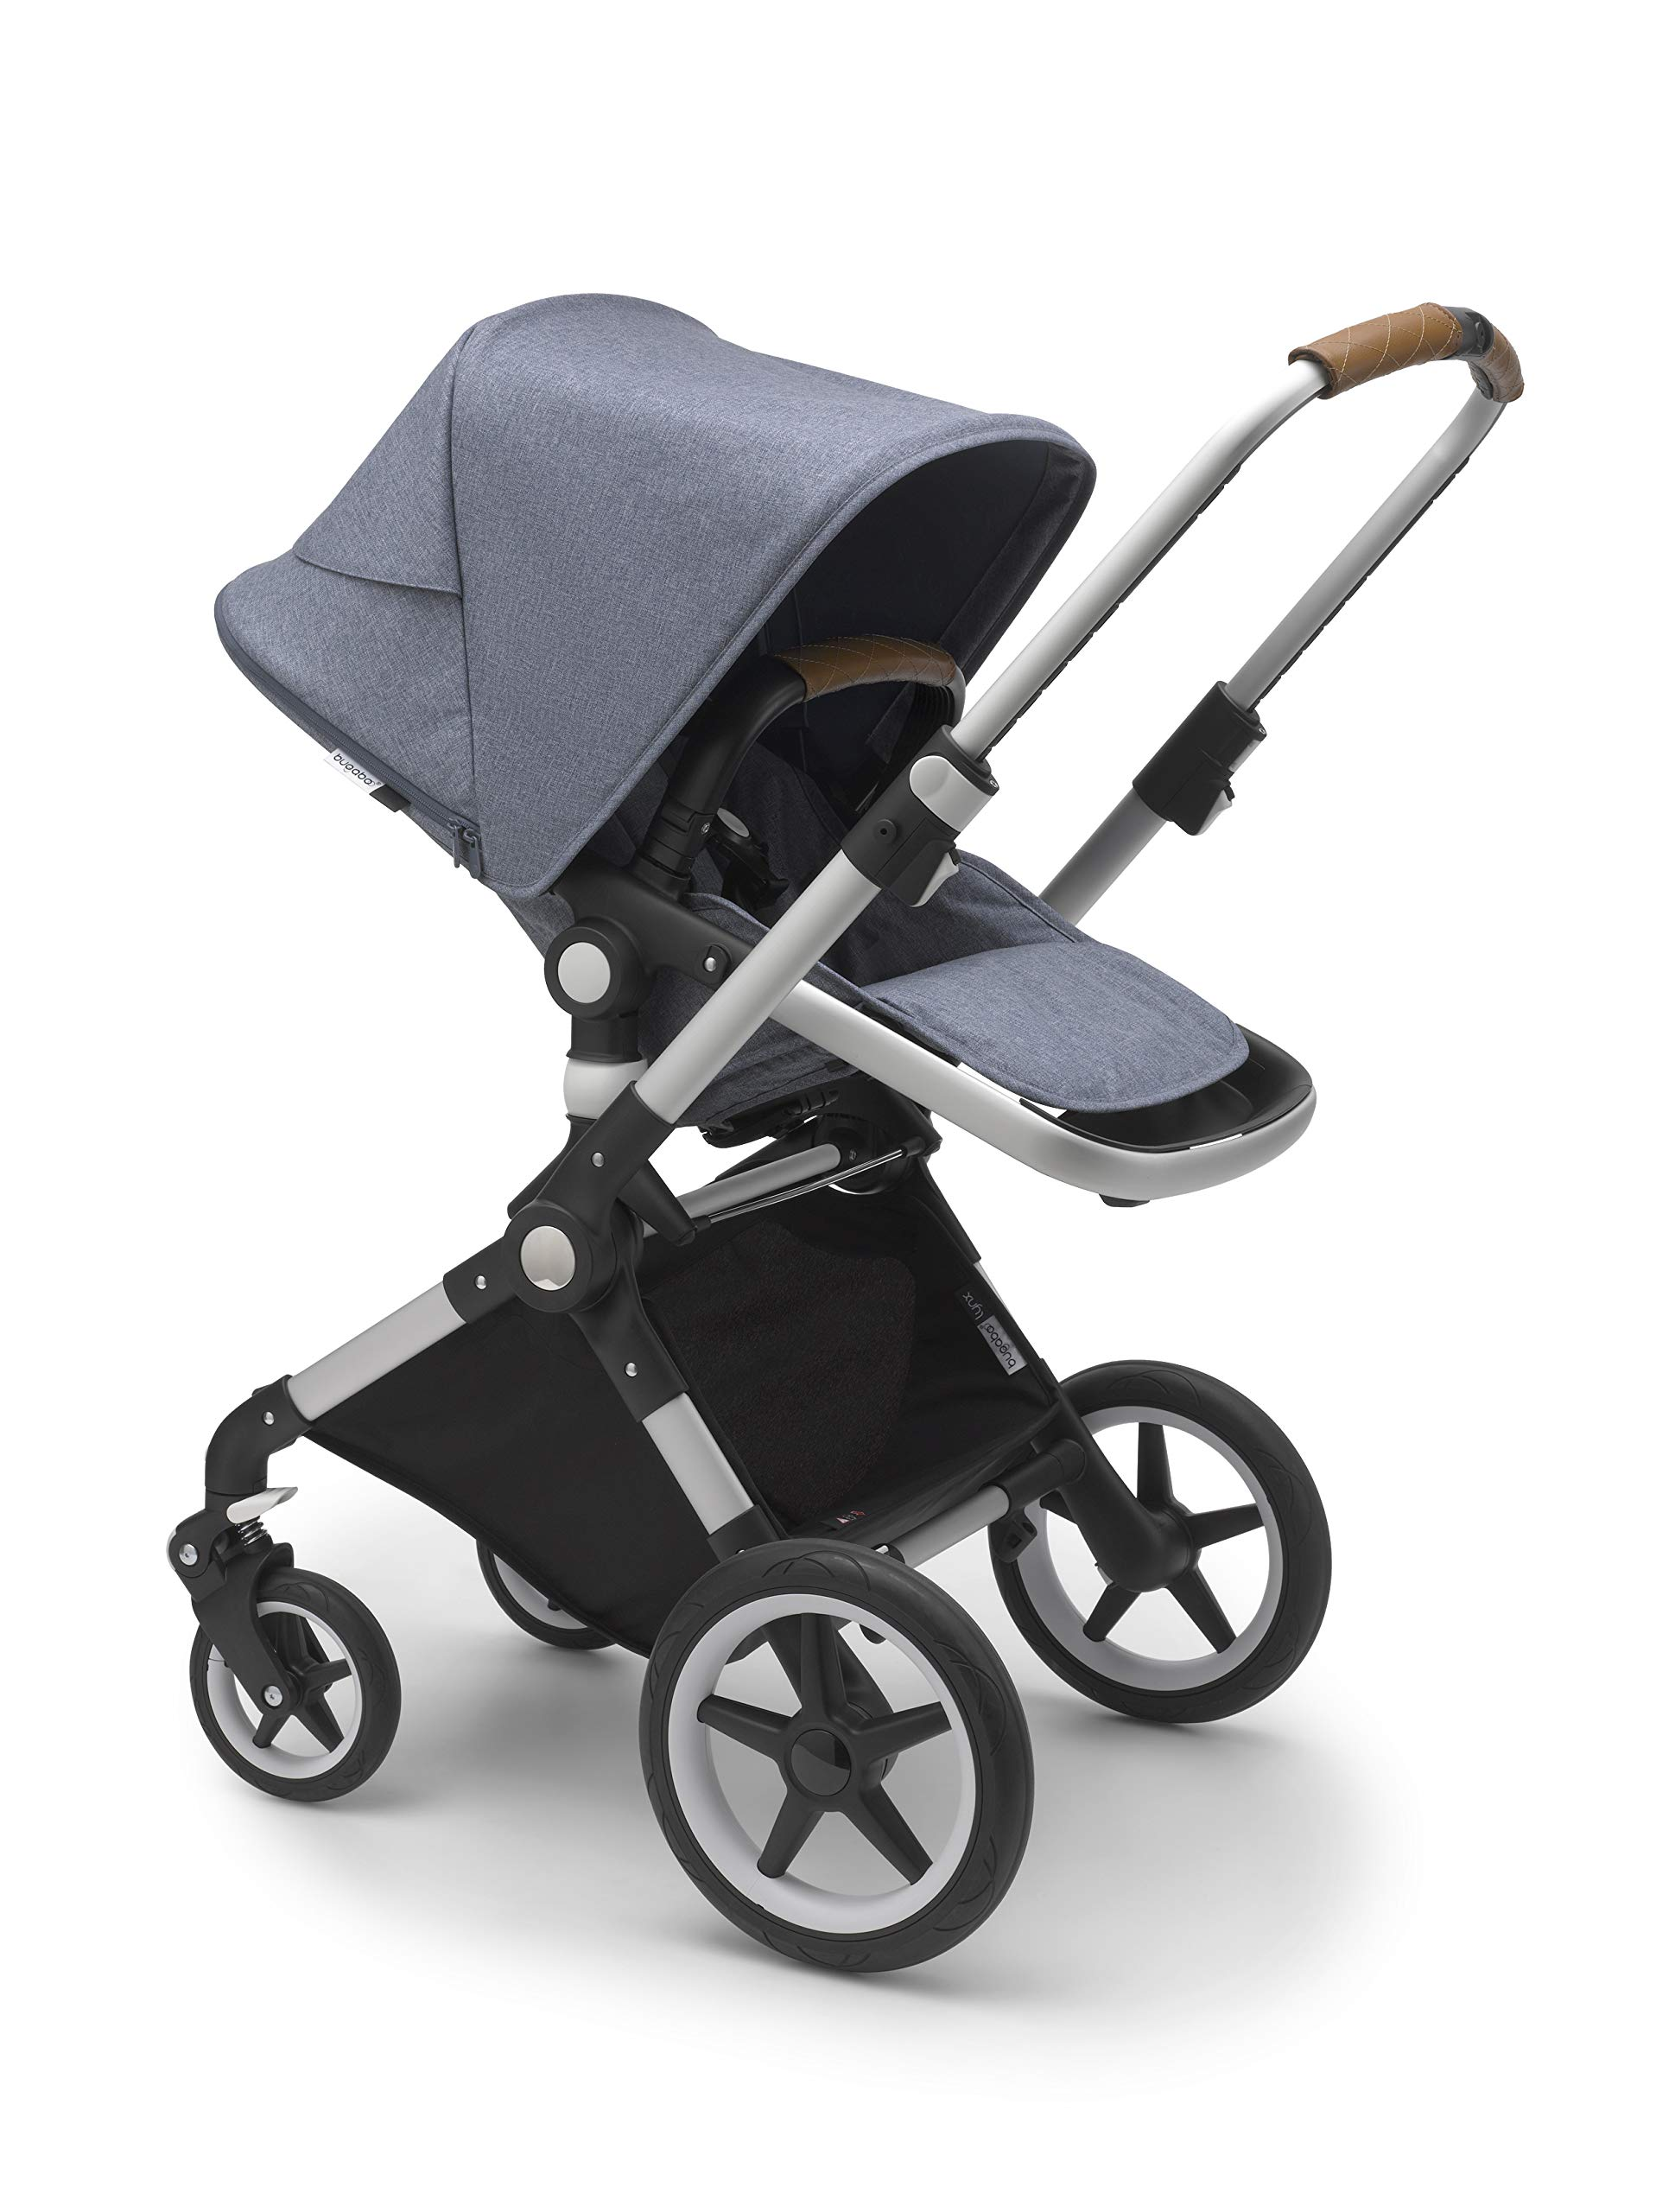 Bugaboo Lynx - The Lightest Full-Size Baby Stroller - All-Terrain Stroller with an Effortless Push and One-Handed Steering - Compatible with Bugaboo Turtle by Nuna Car Seat - Alu/Blue Mélange